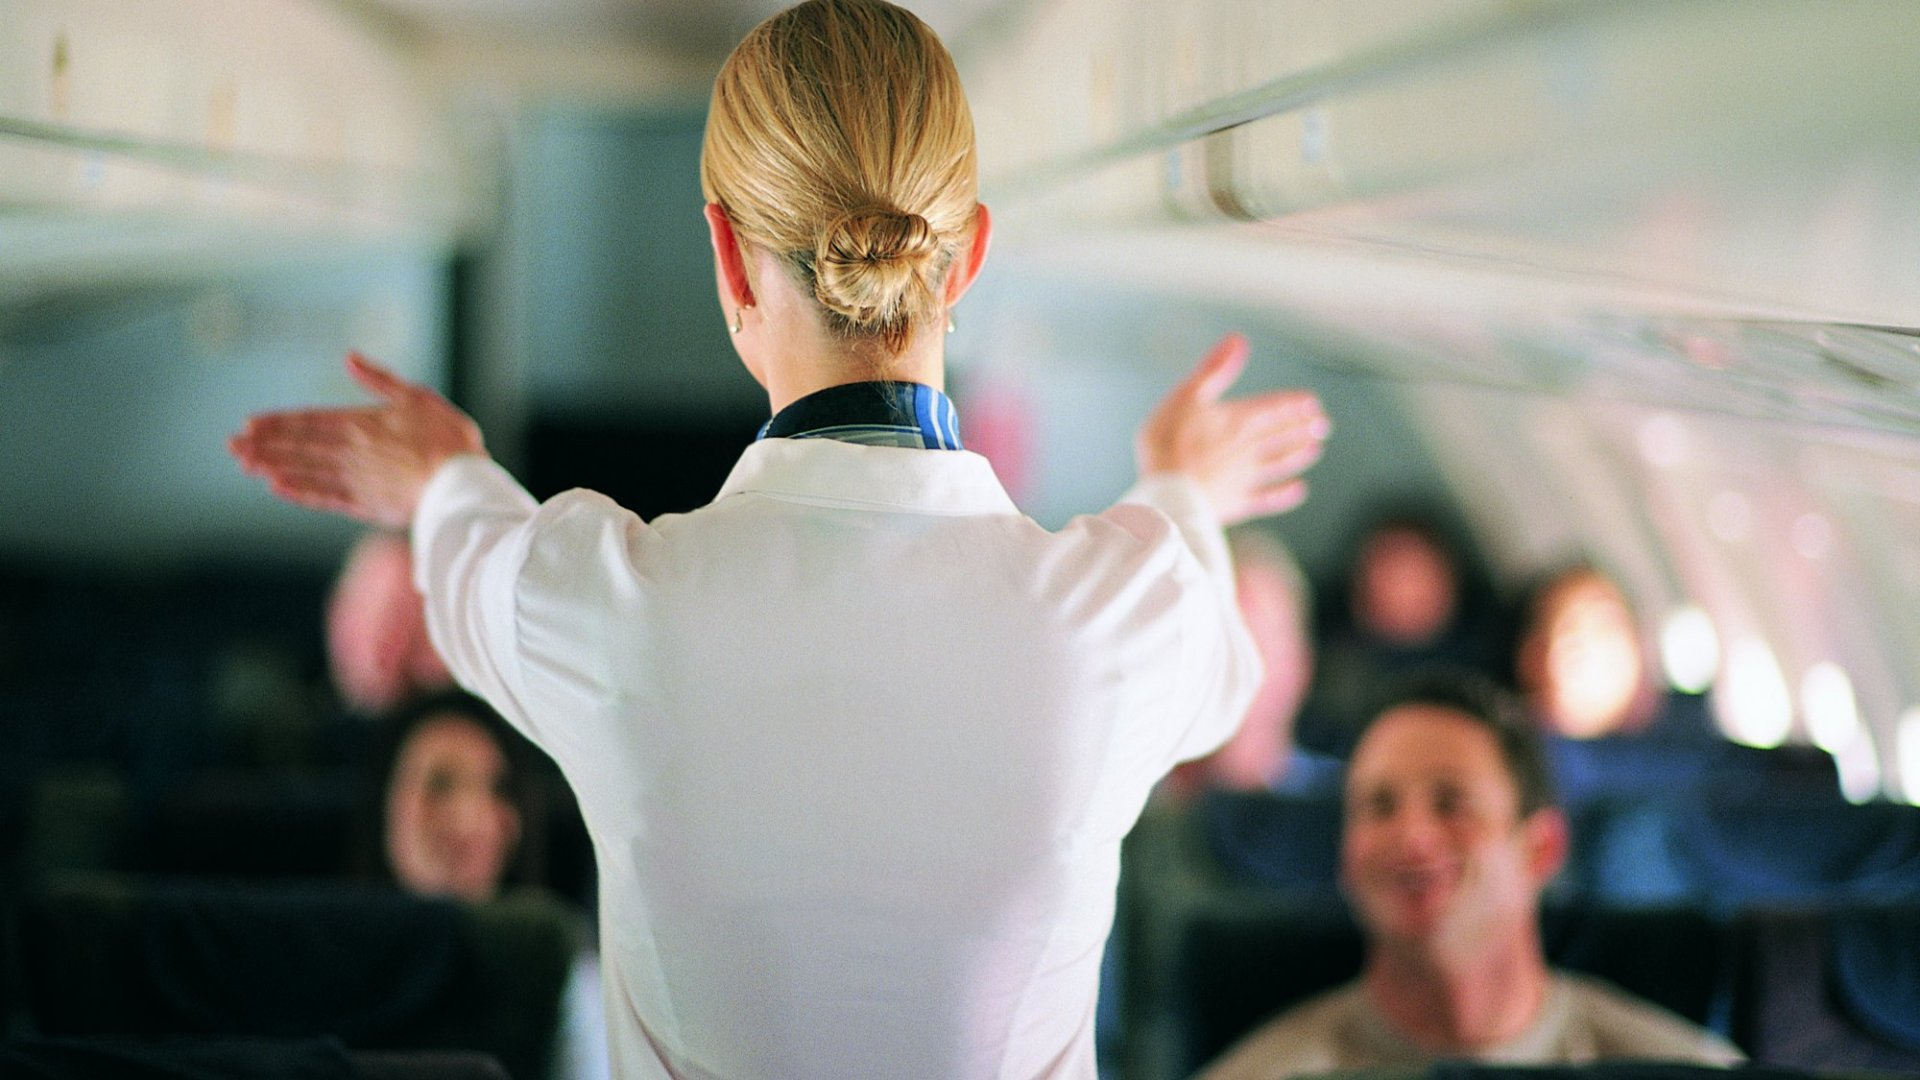 President Trump Just Signed a New Aviation Law. Flight Attendants Can Hardly Believe What's in It